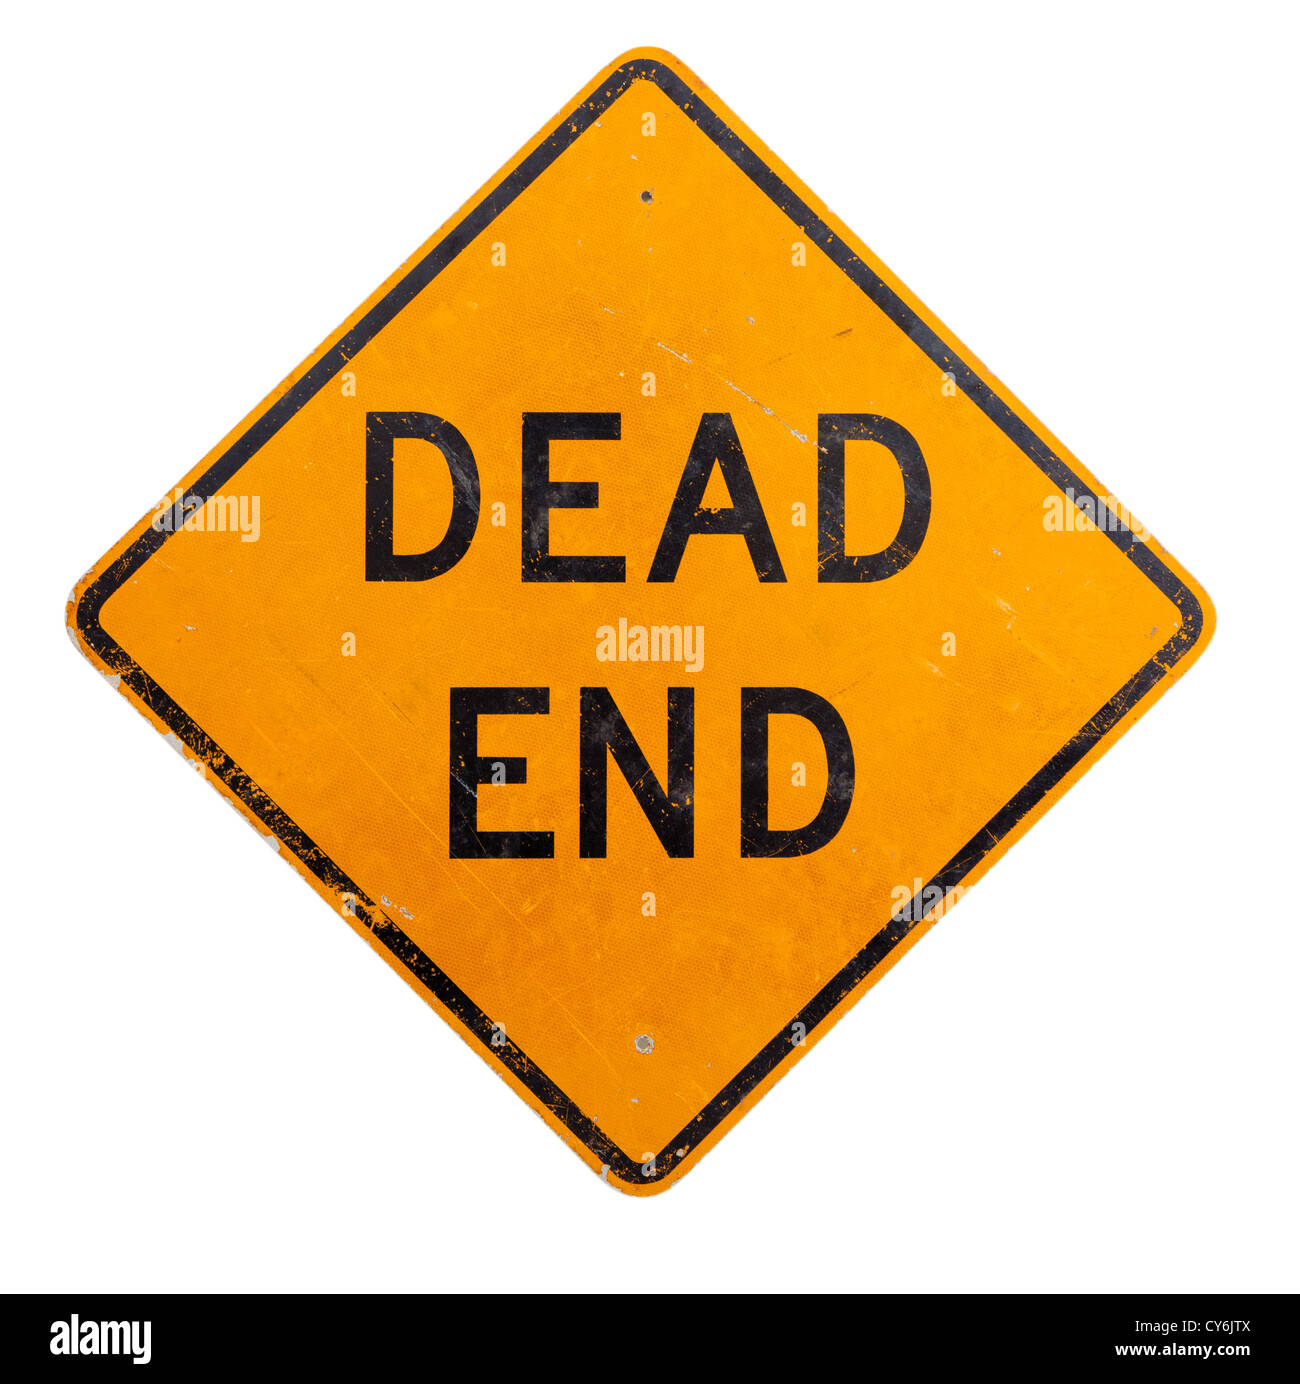 A yellow dead end road sign on a white background - Stock Image